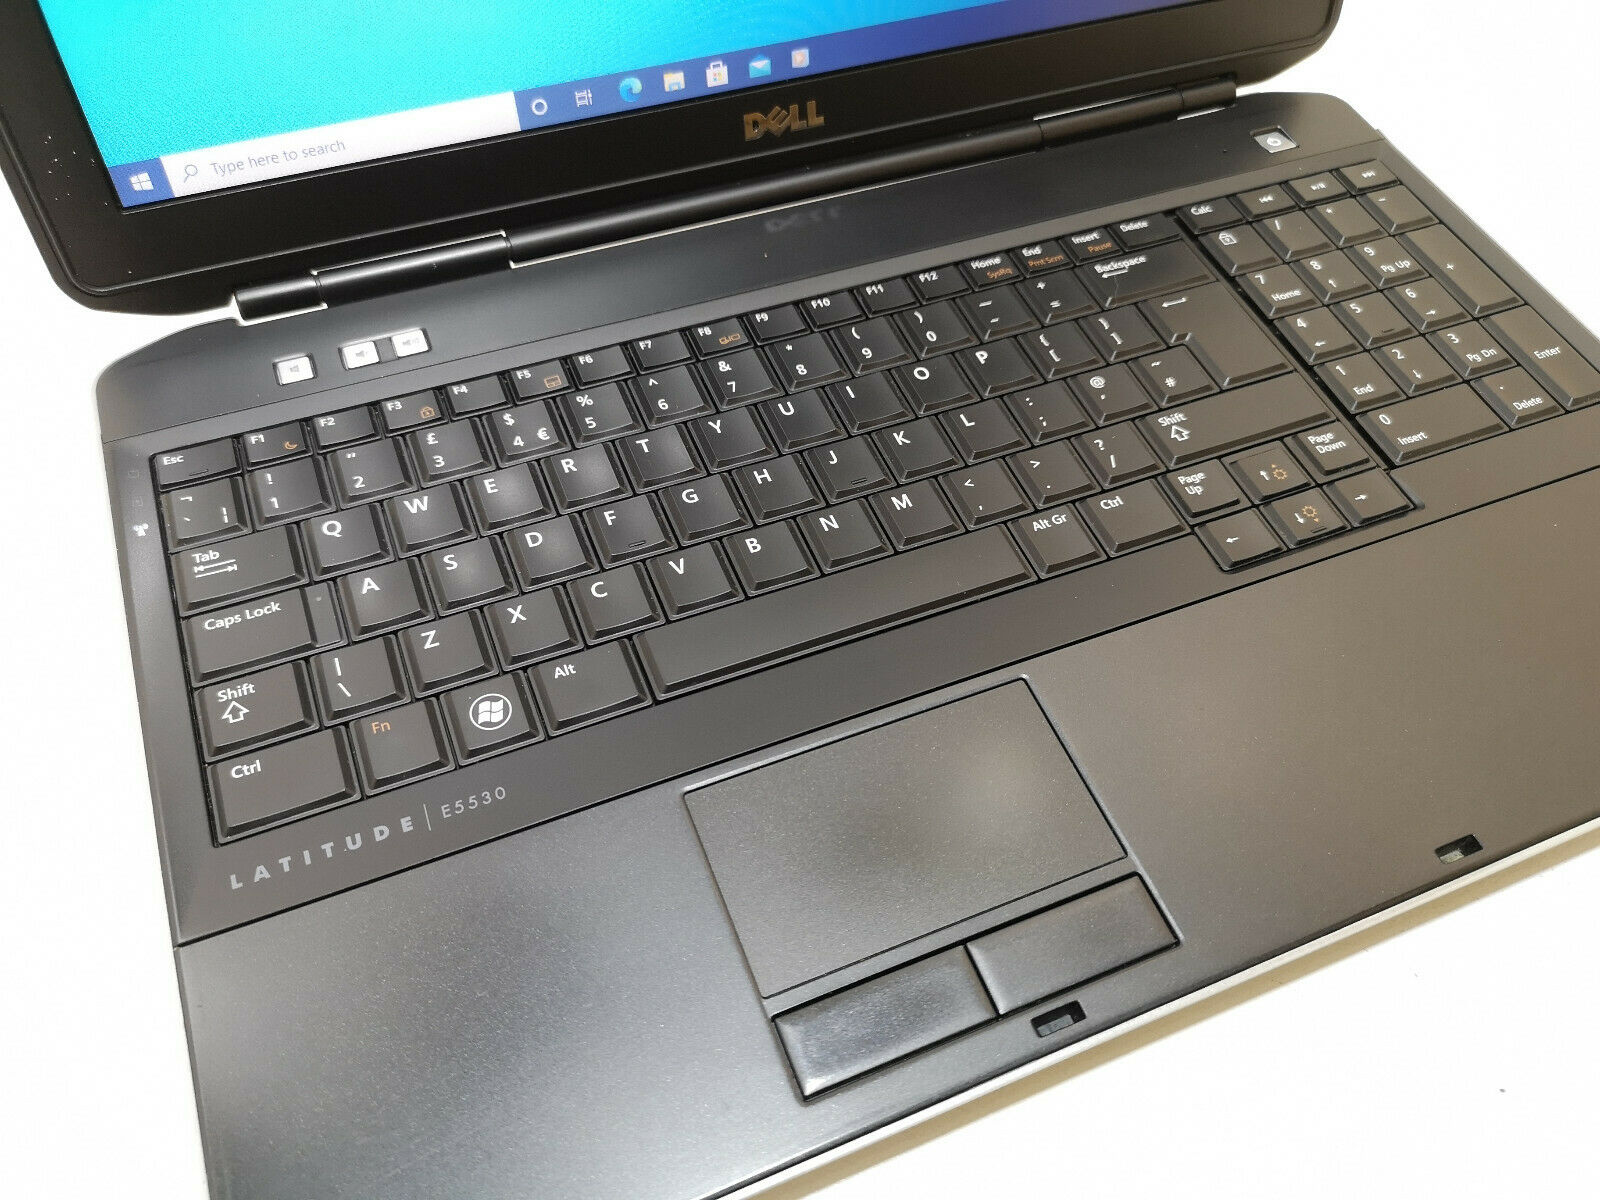 Dell Latitude E5530 No 2